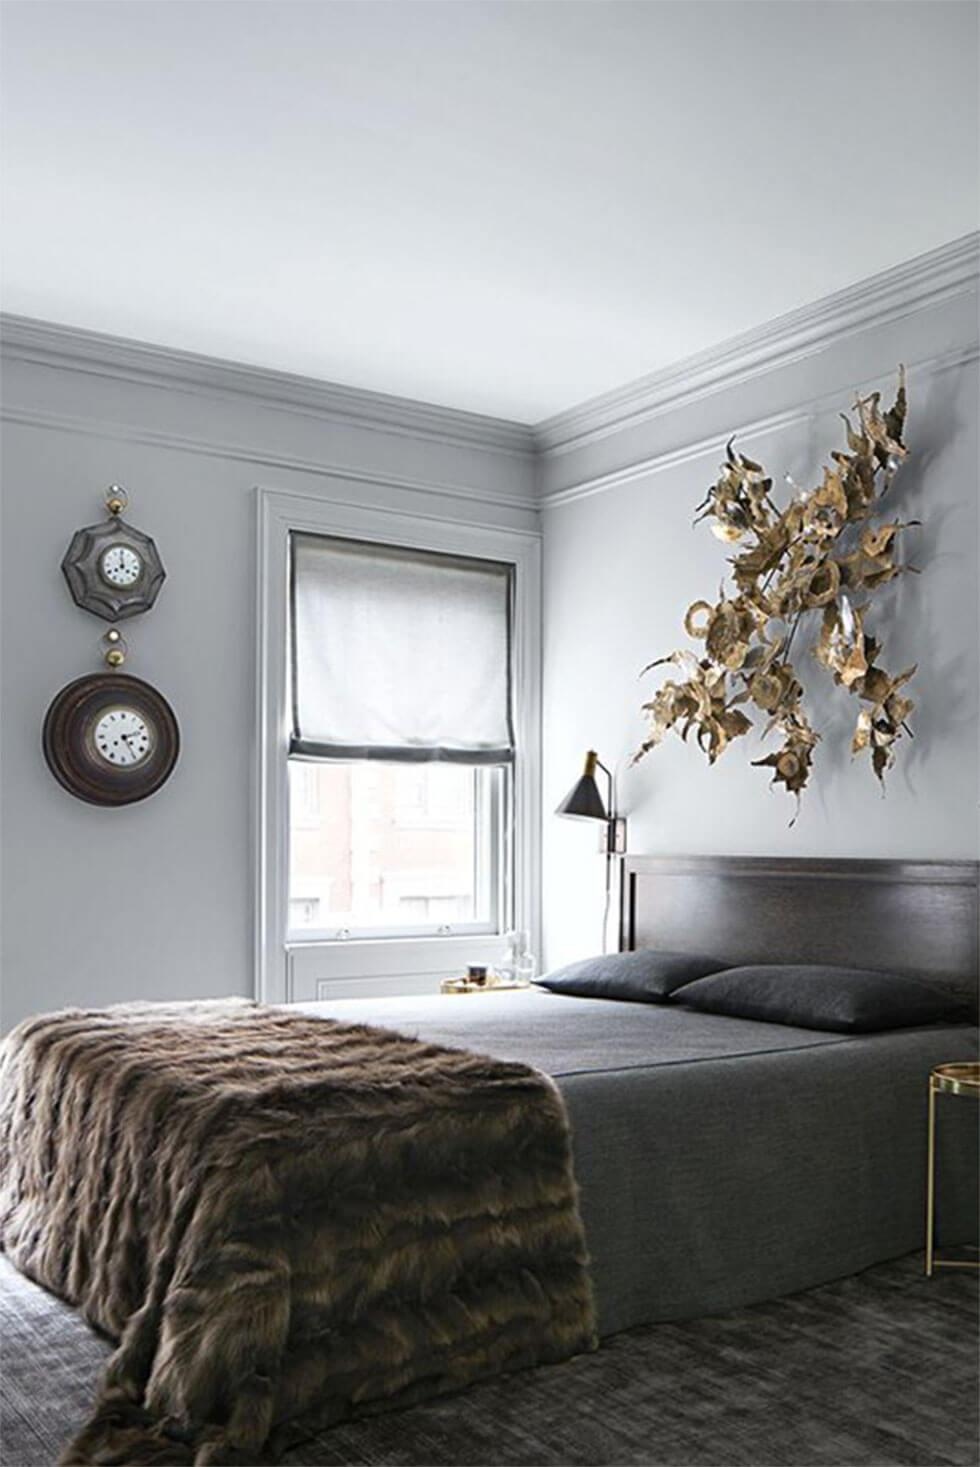 Relaxing neutrals in a stylish bedroom with grey-painted walls.